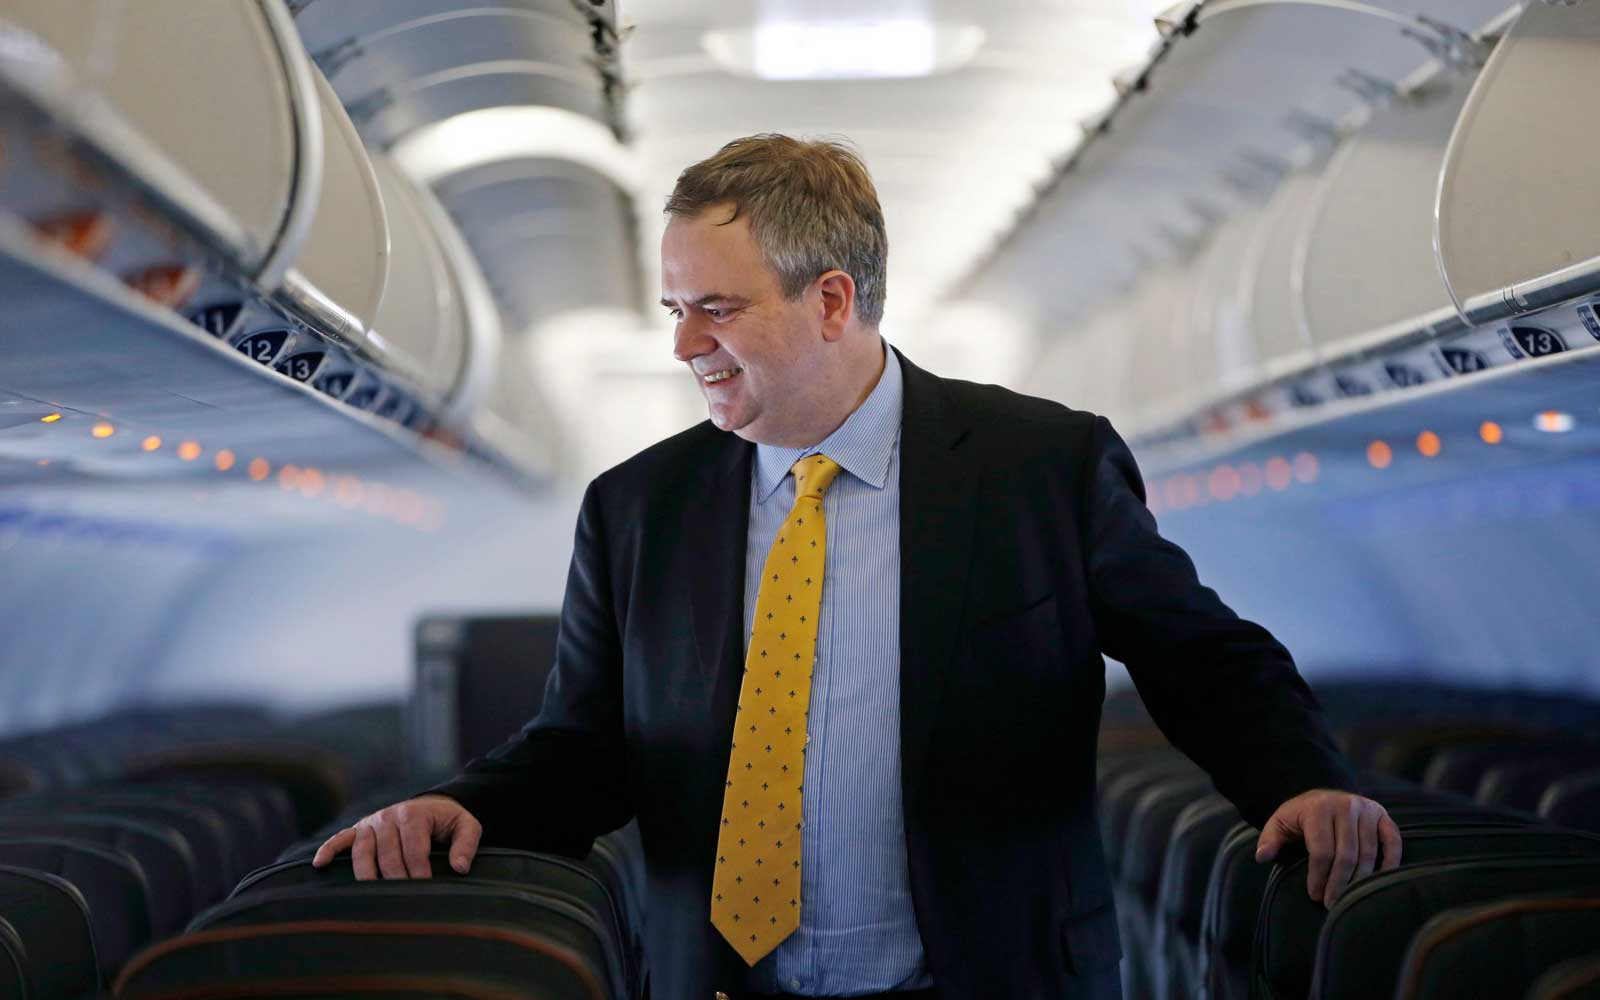 JetBlue's CEO Picked Up Trash and Gave Away Free Tickets on a Recent Flight